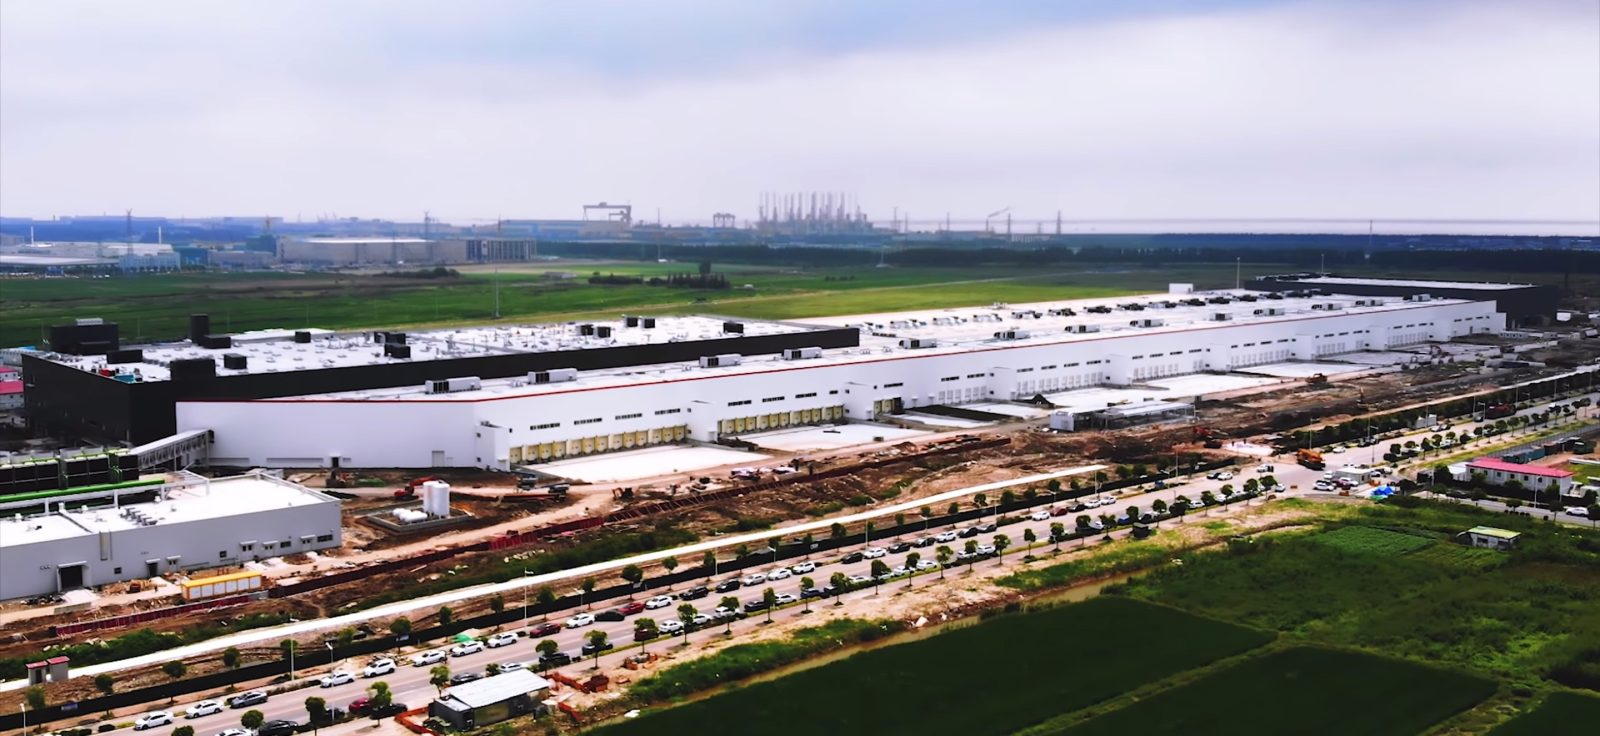 Tesla appears to be preparing an expansion at Gigafactory 3